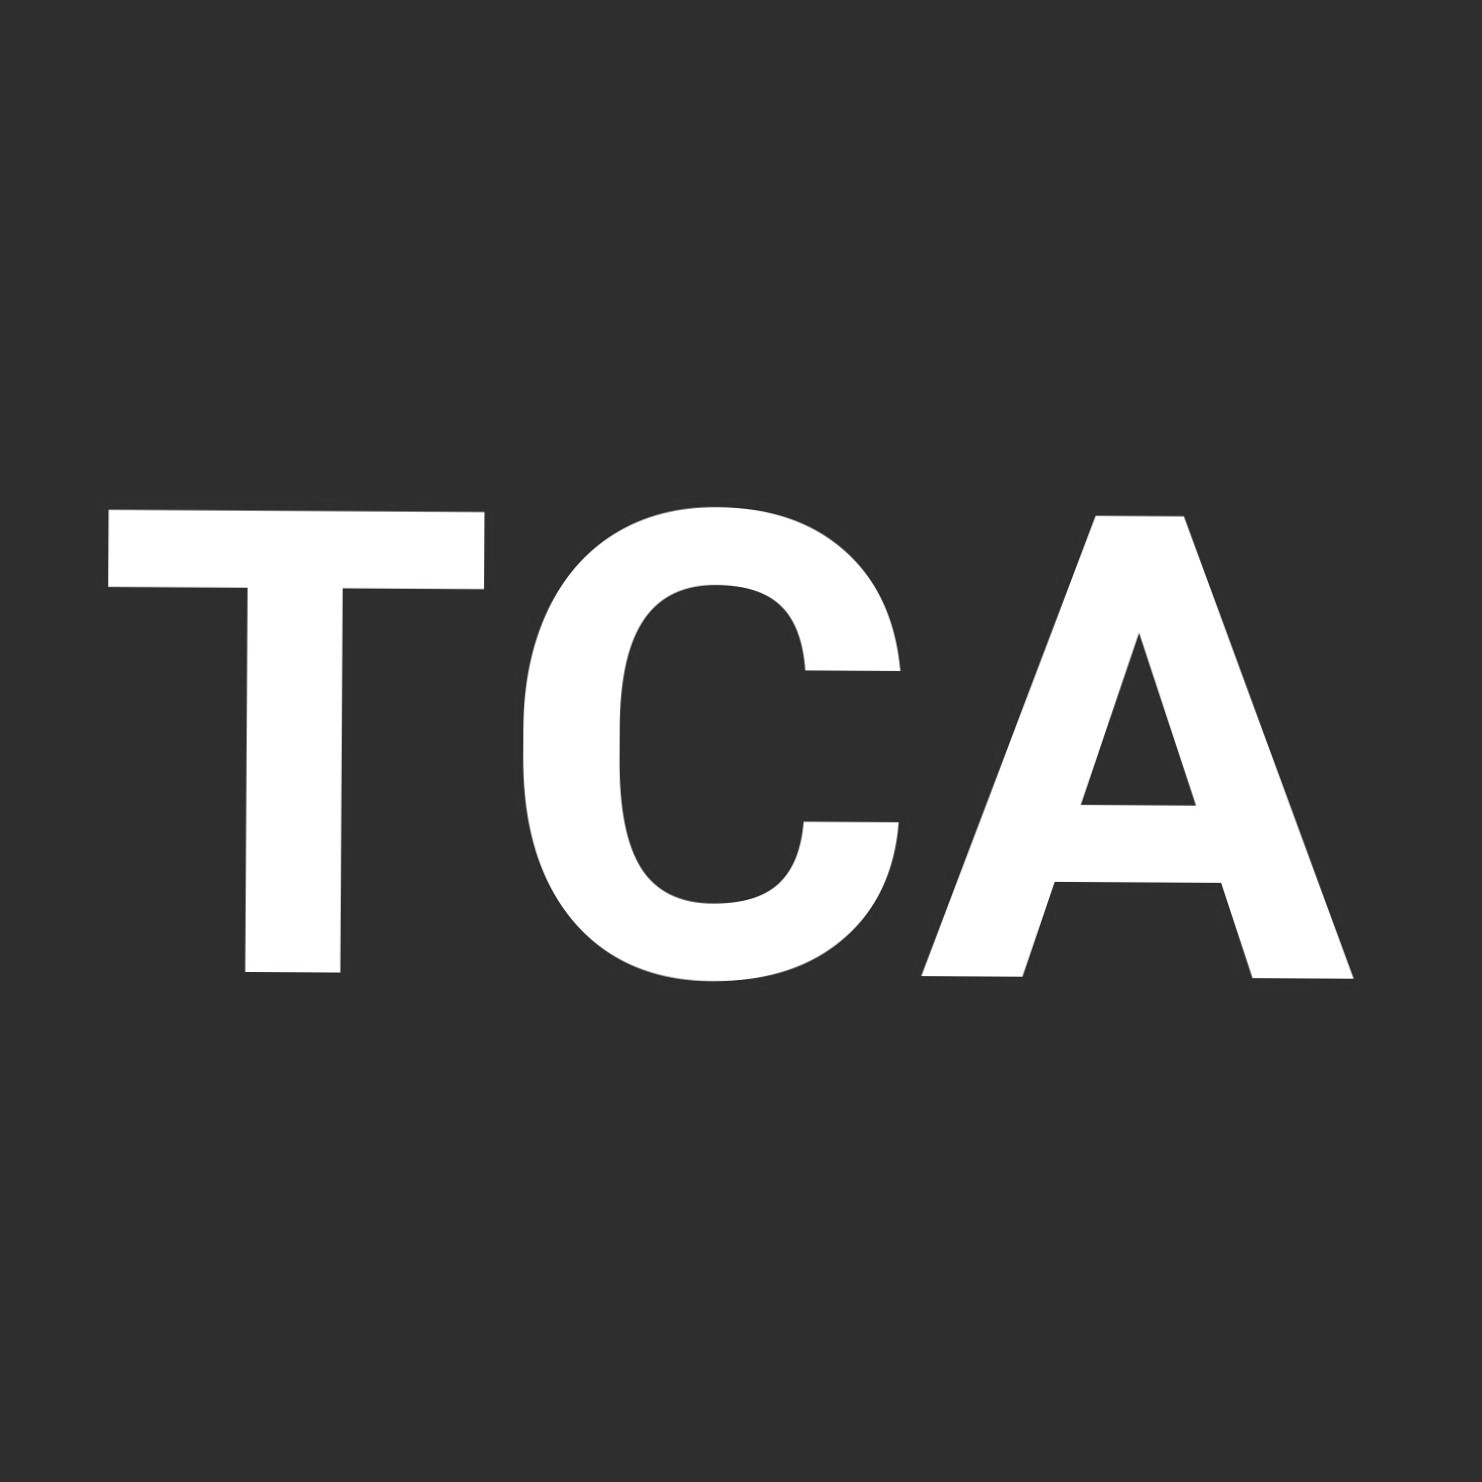 Certified - Certified by a new highly accountable and expert Trustless Computing Certification Body, being established by our non-profit arm, the Trustless Computing Association.